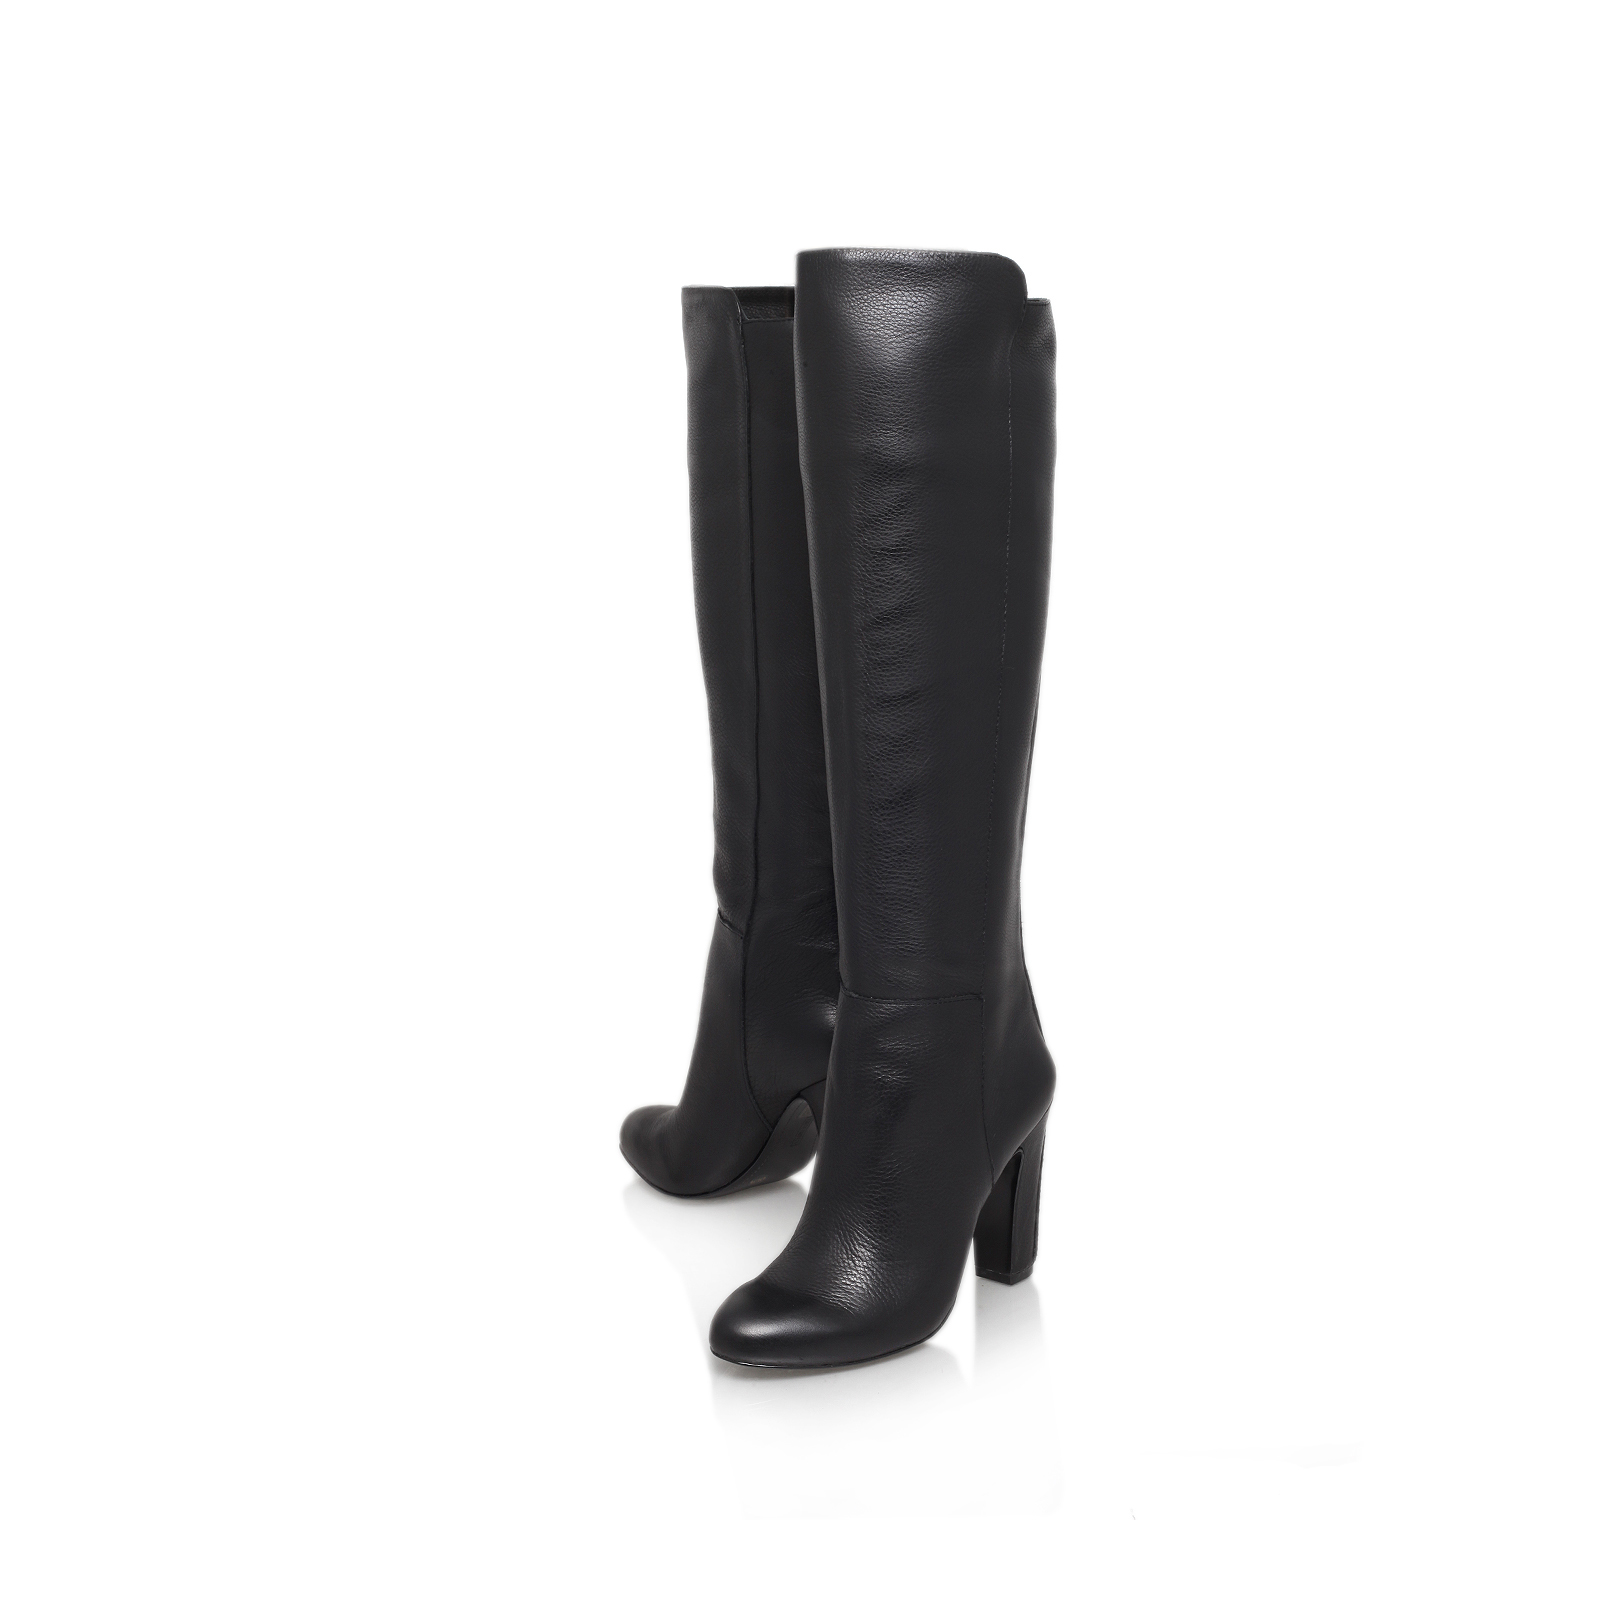 Vince Camuto Carleen Black High Heel Knee Boots By Vince